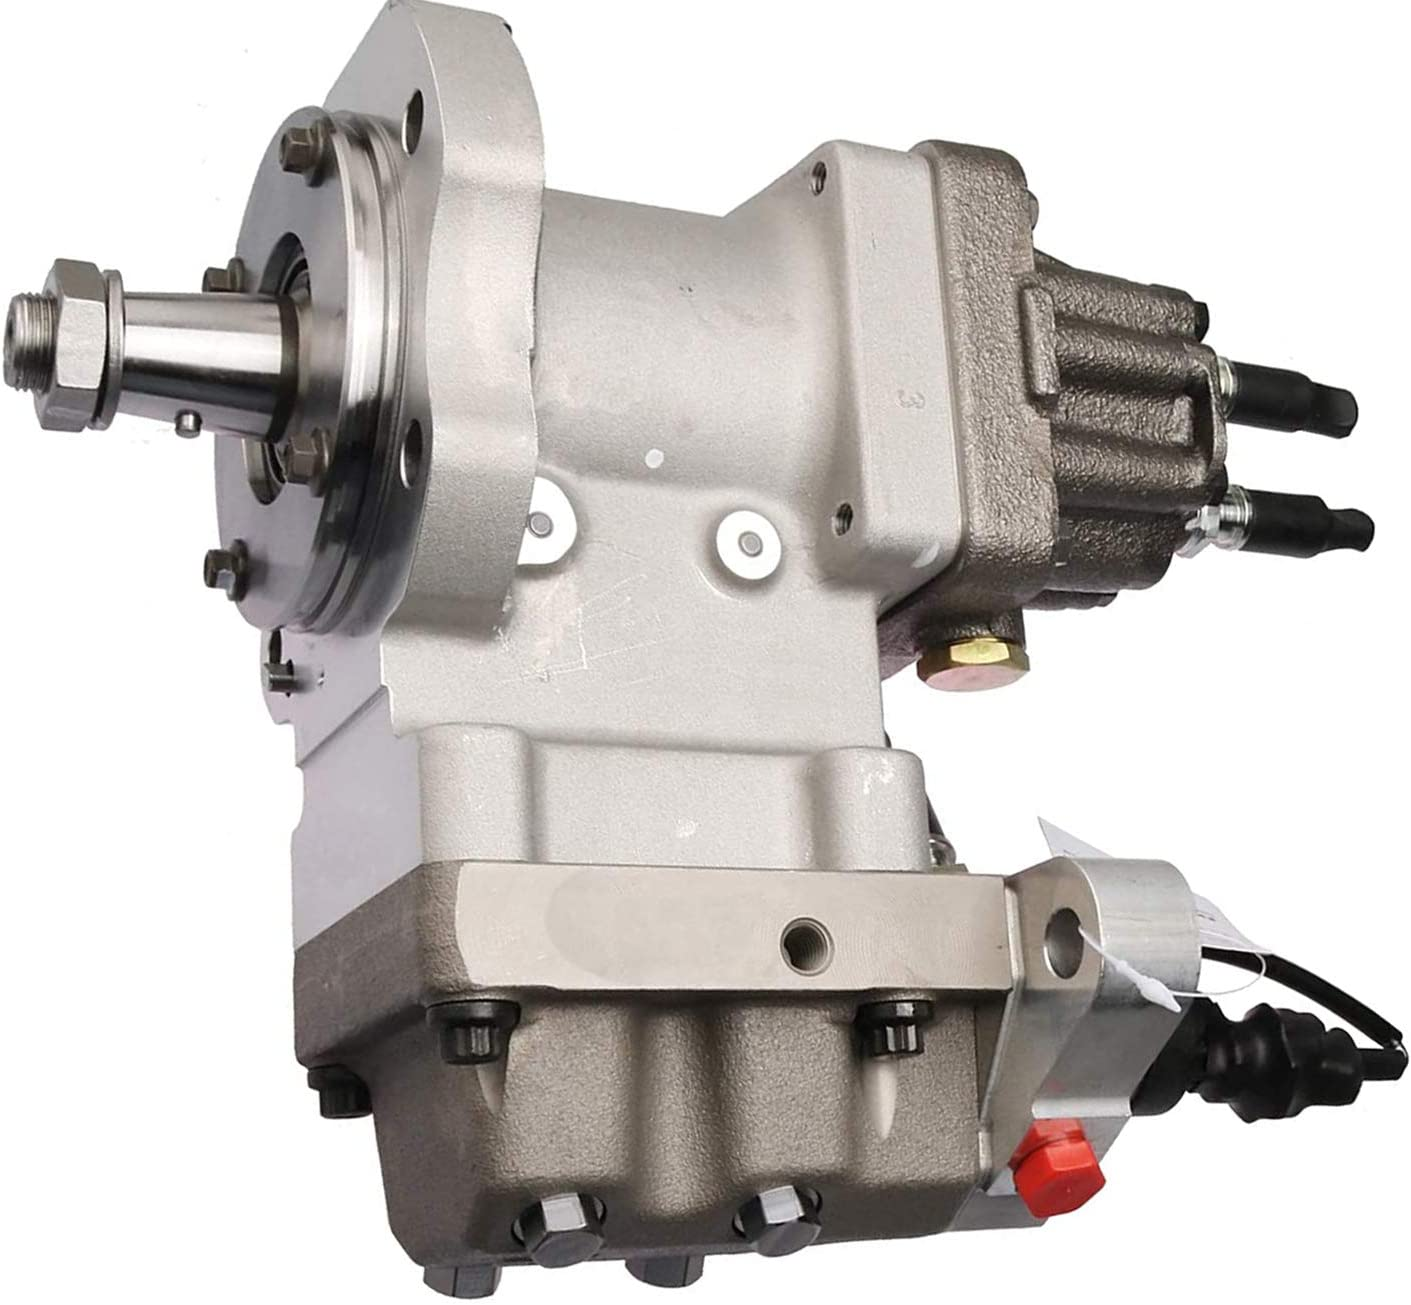 Solarhome Fuel Injection Pump 8-97034591-0 8970345910 658A527143 ...